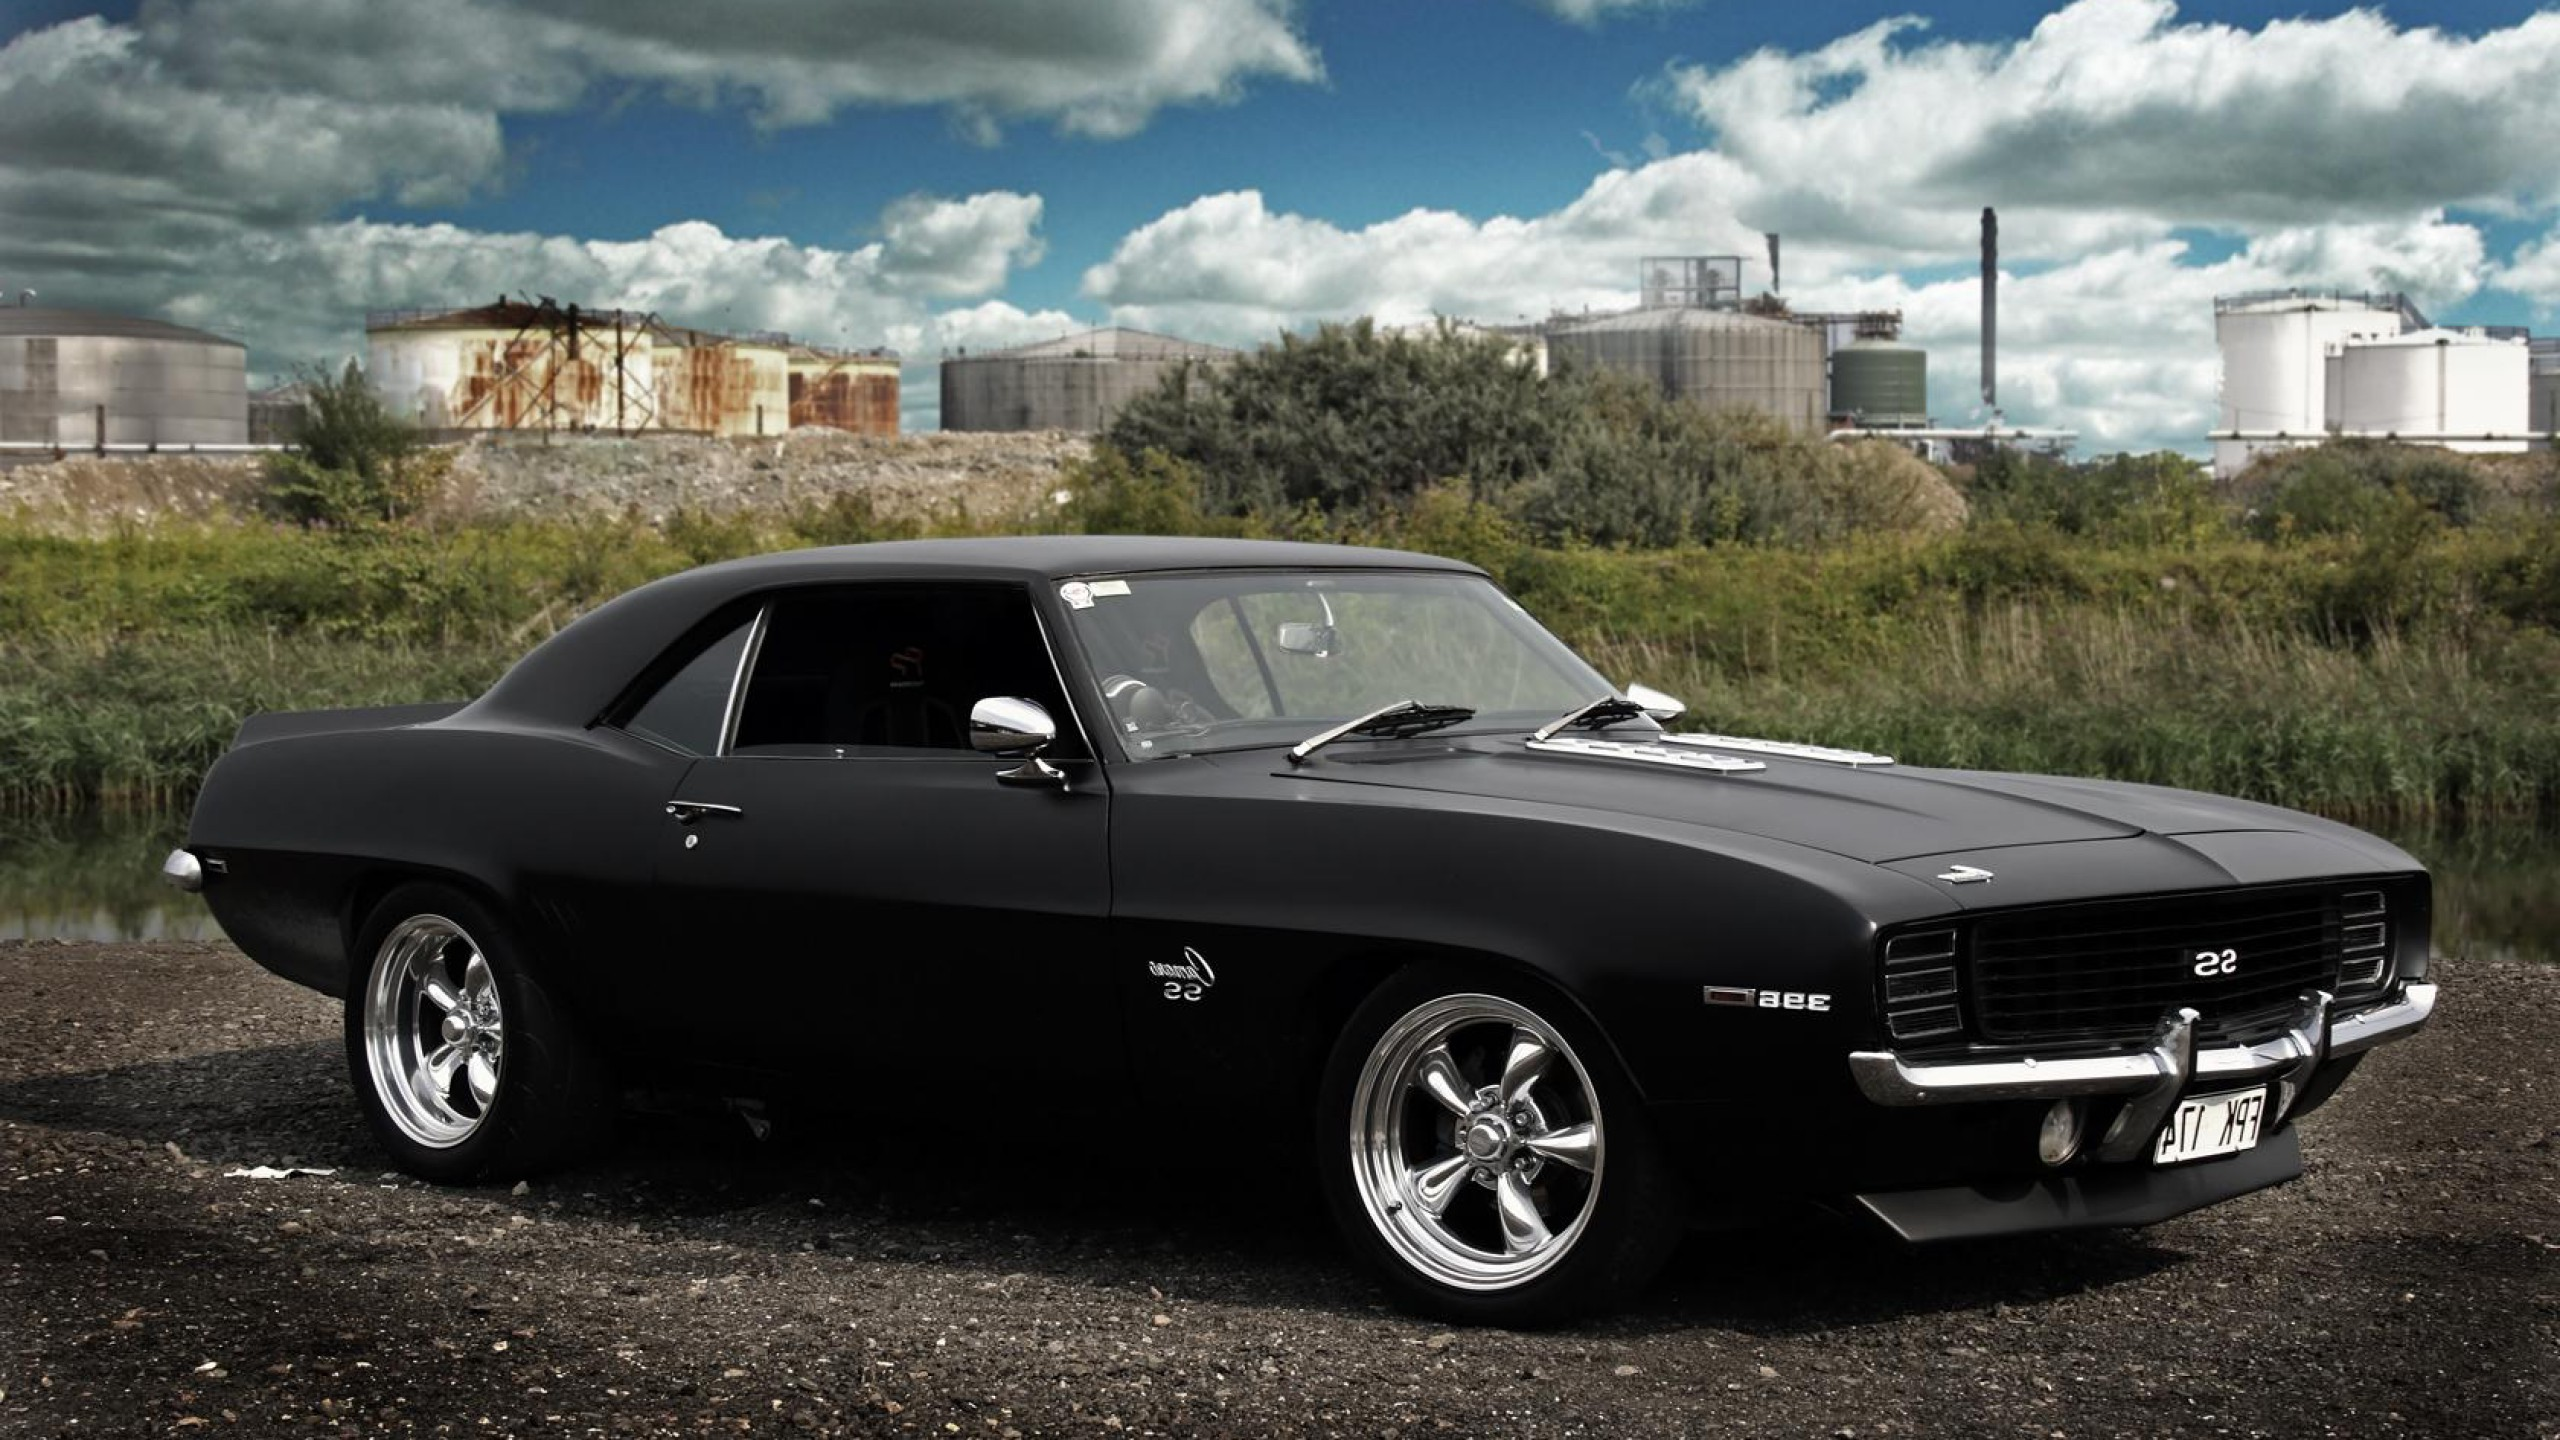 Dodge Muscle Car Wallpaper Wallpaper WallpaperLepi 2560x1440